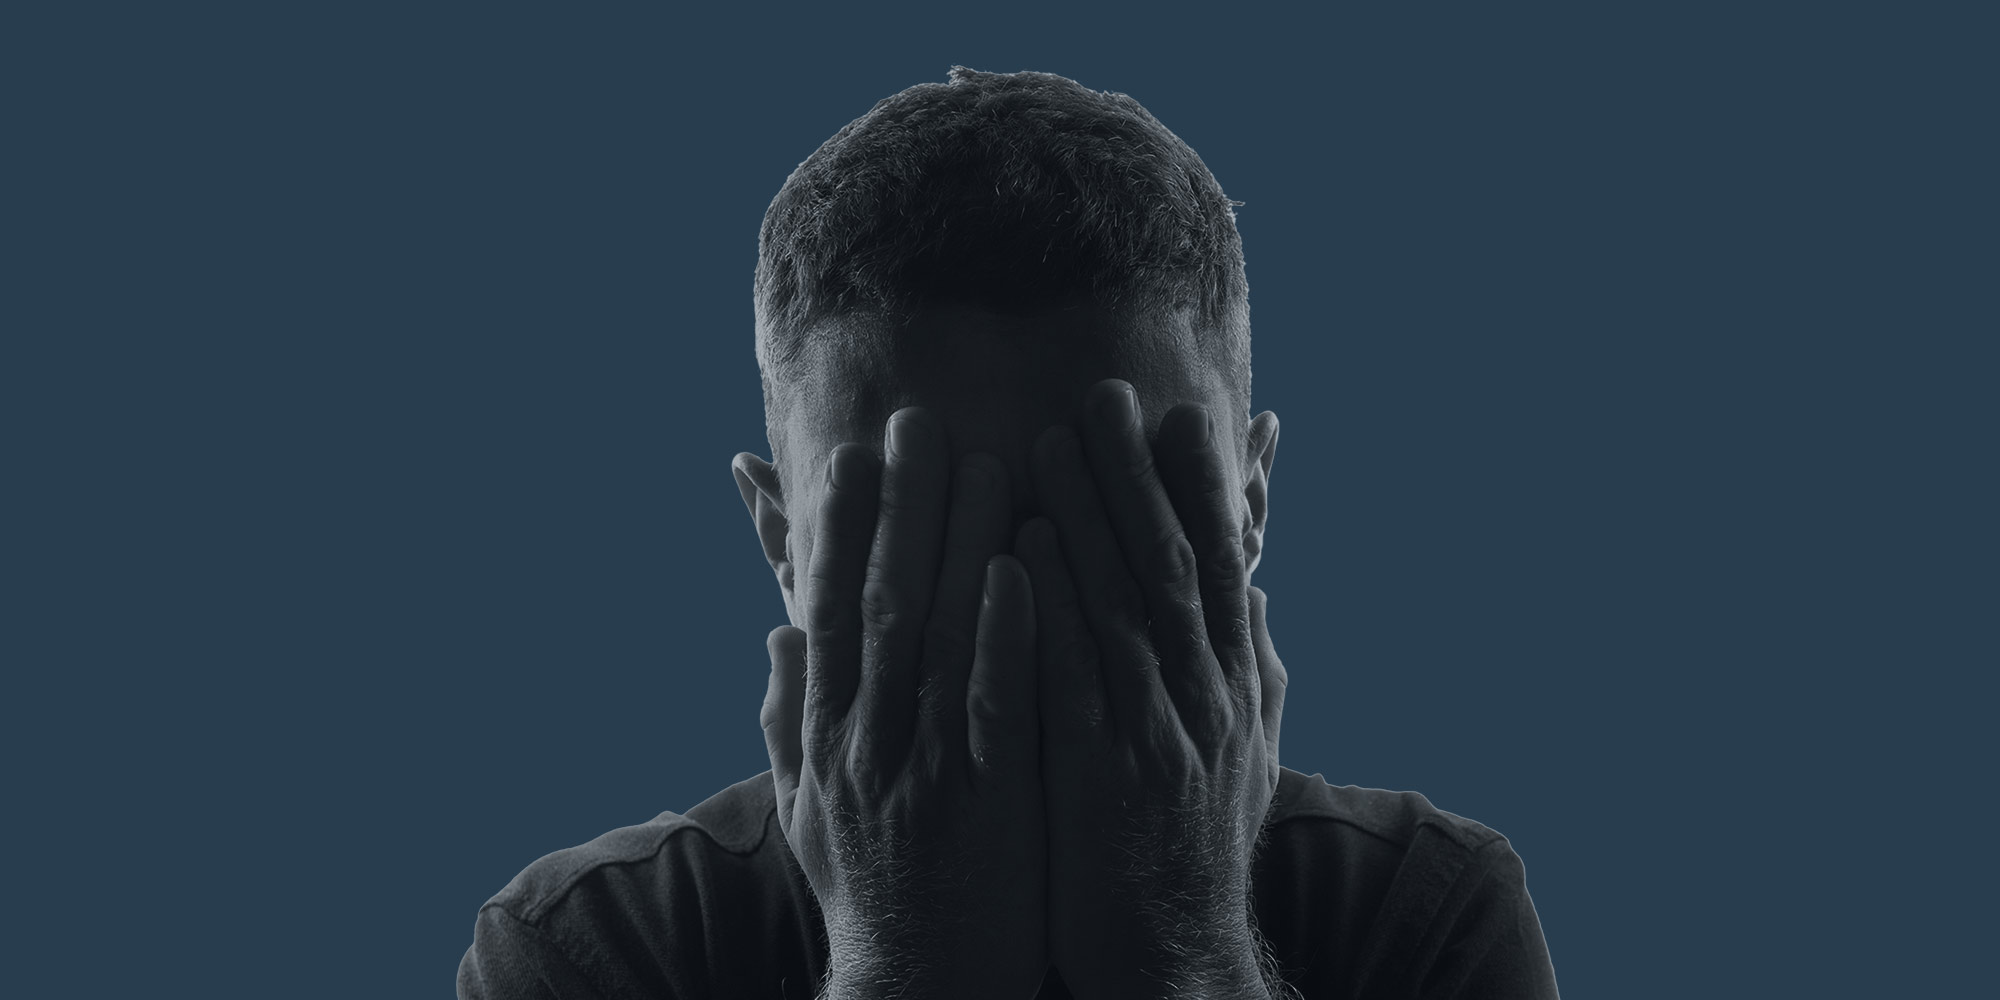 Man covering his face with his hands, depression